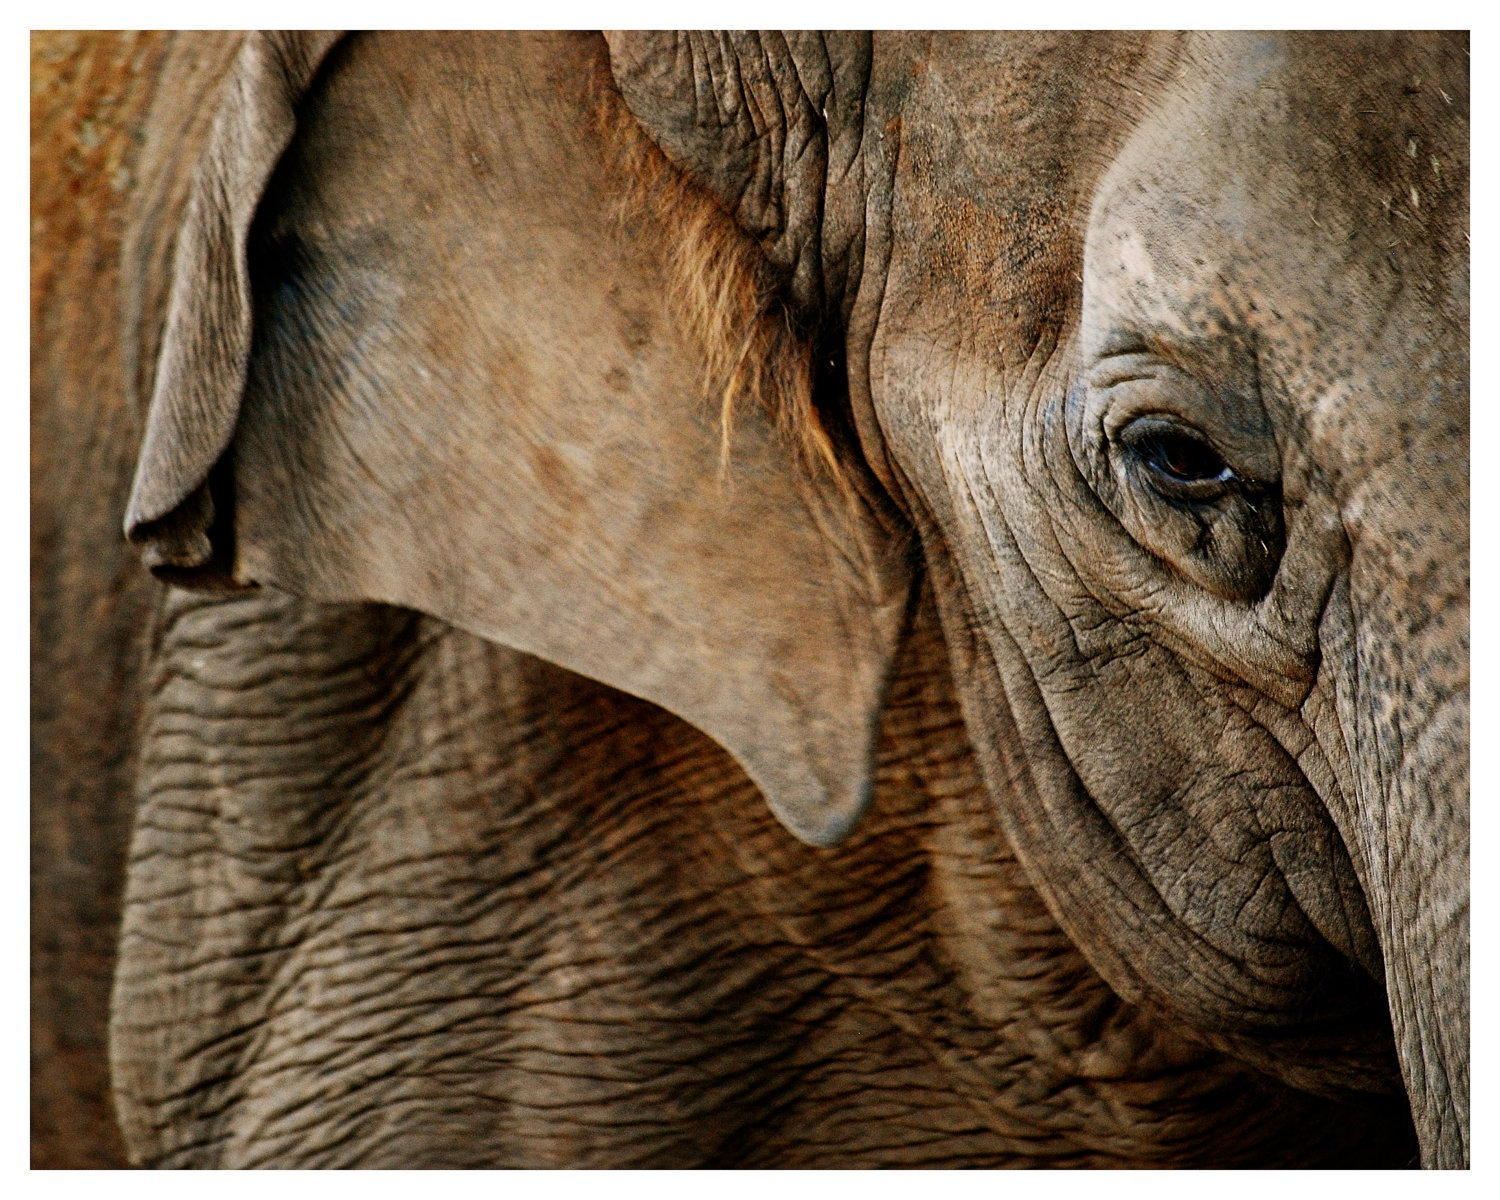 fine art image of an elephant, elephant's eye, gentle giant, image by enframe photography by rachel boyer